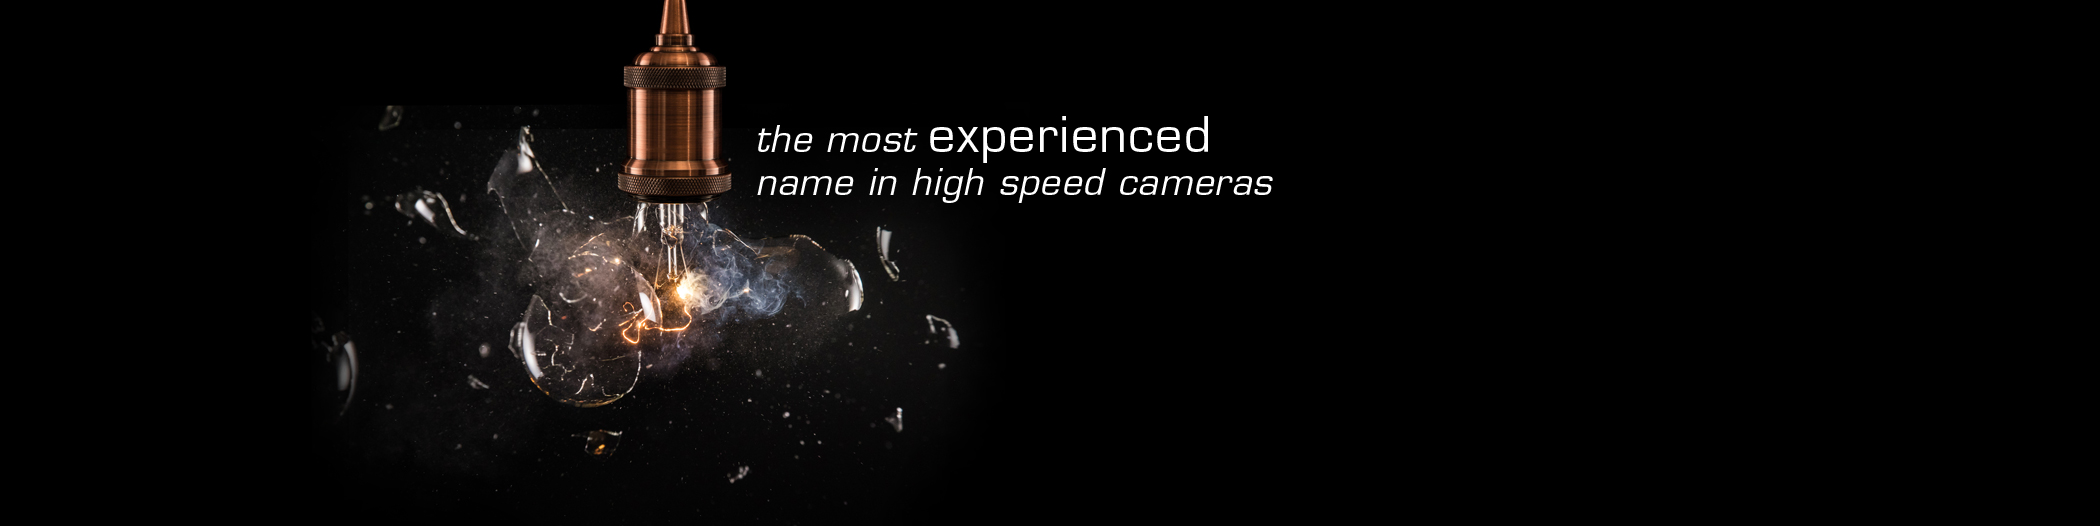 nac: The most experienced name in high speed cameras